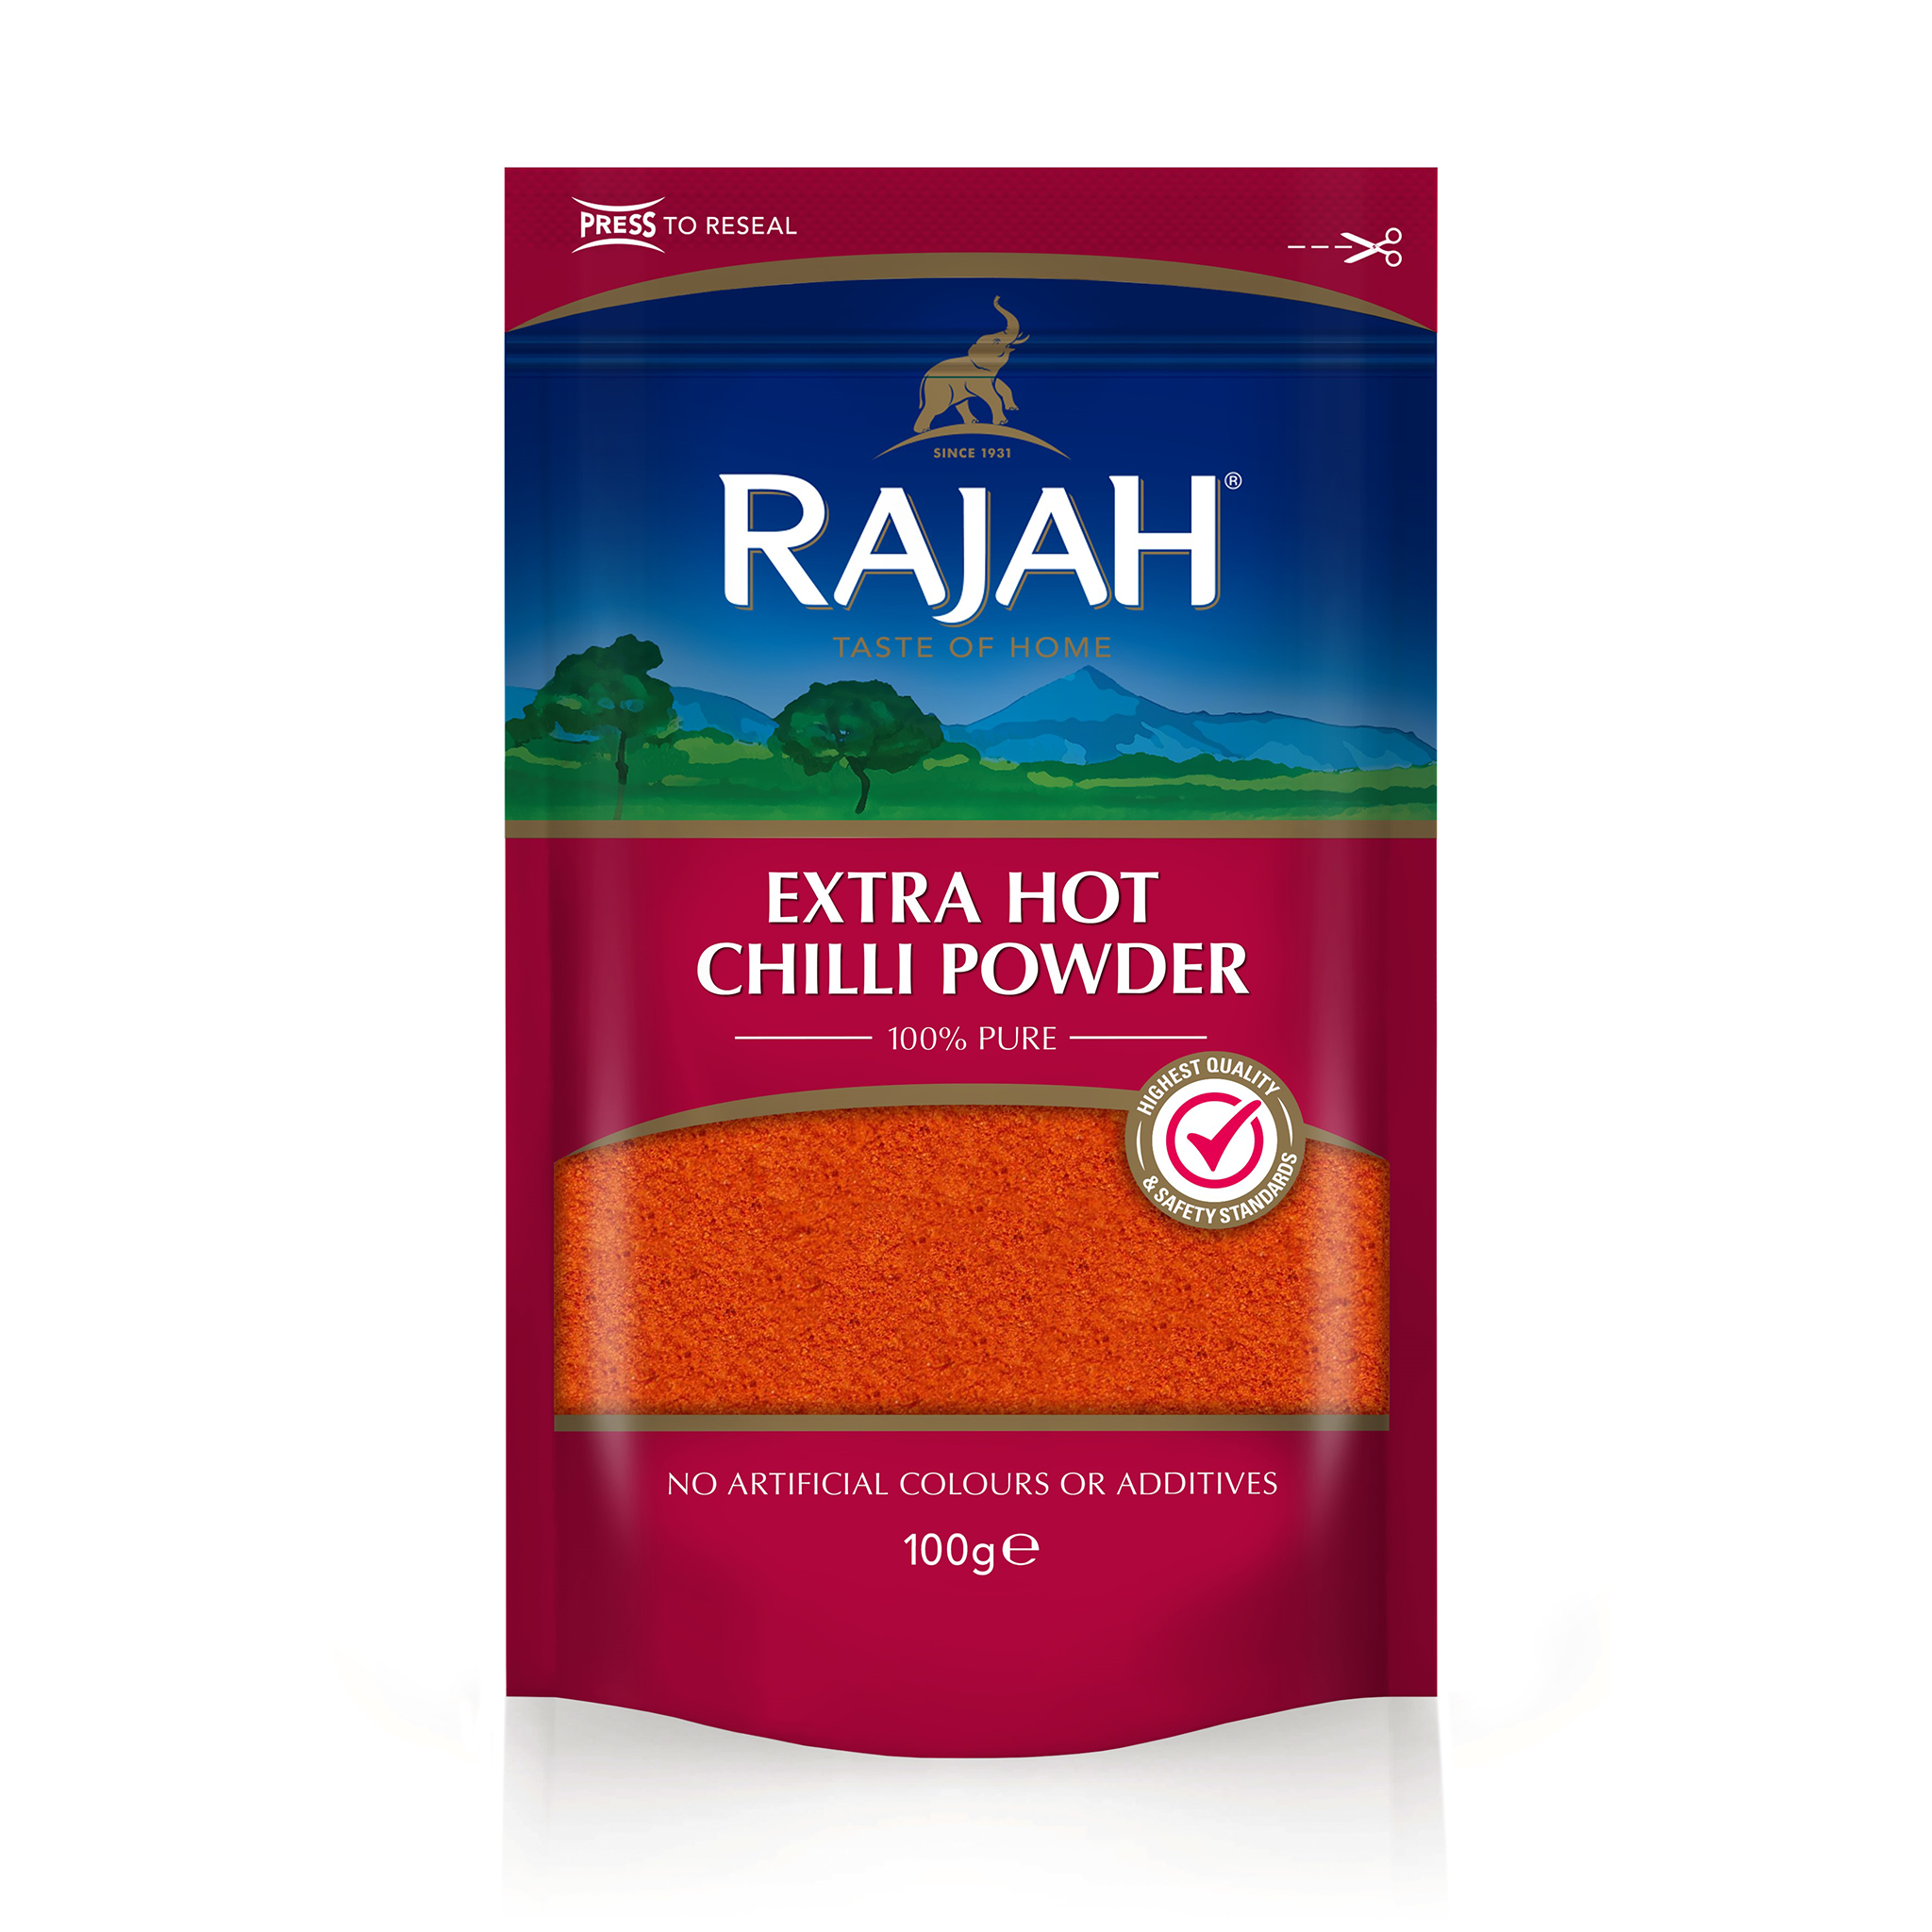 Extra Hot Chilli Powder 100g by Rajah